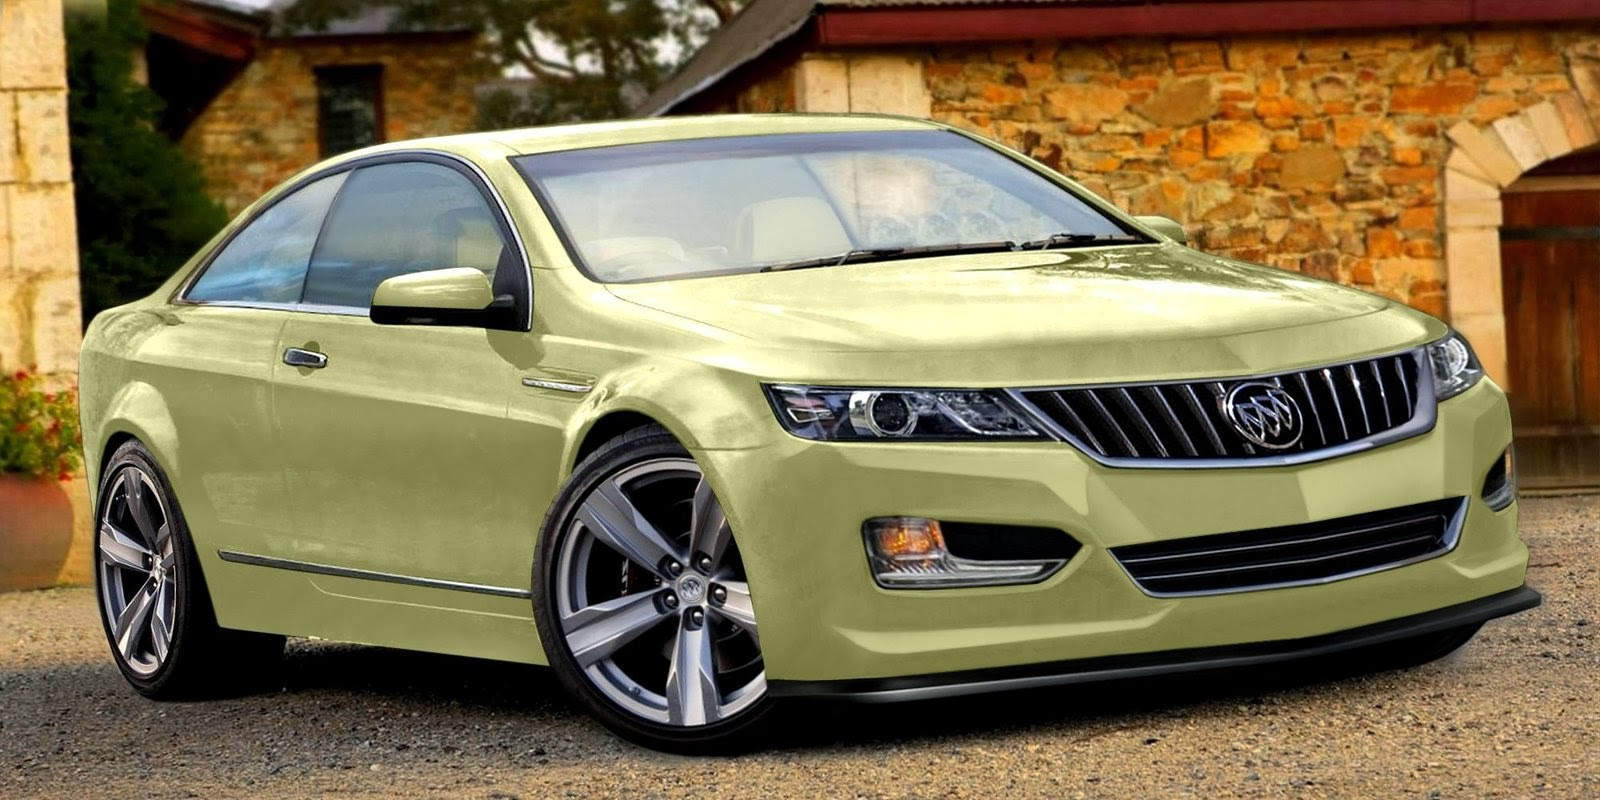 2014 buick 2014 buick velite 2014 buick grand national 2014 buick. Cars Review. Best American Auto & Cars Review